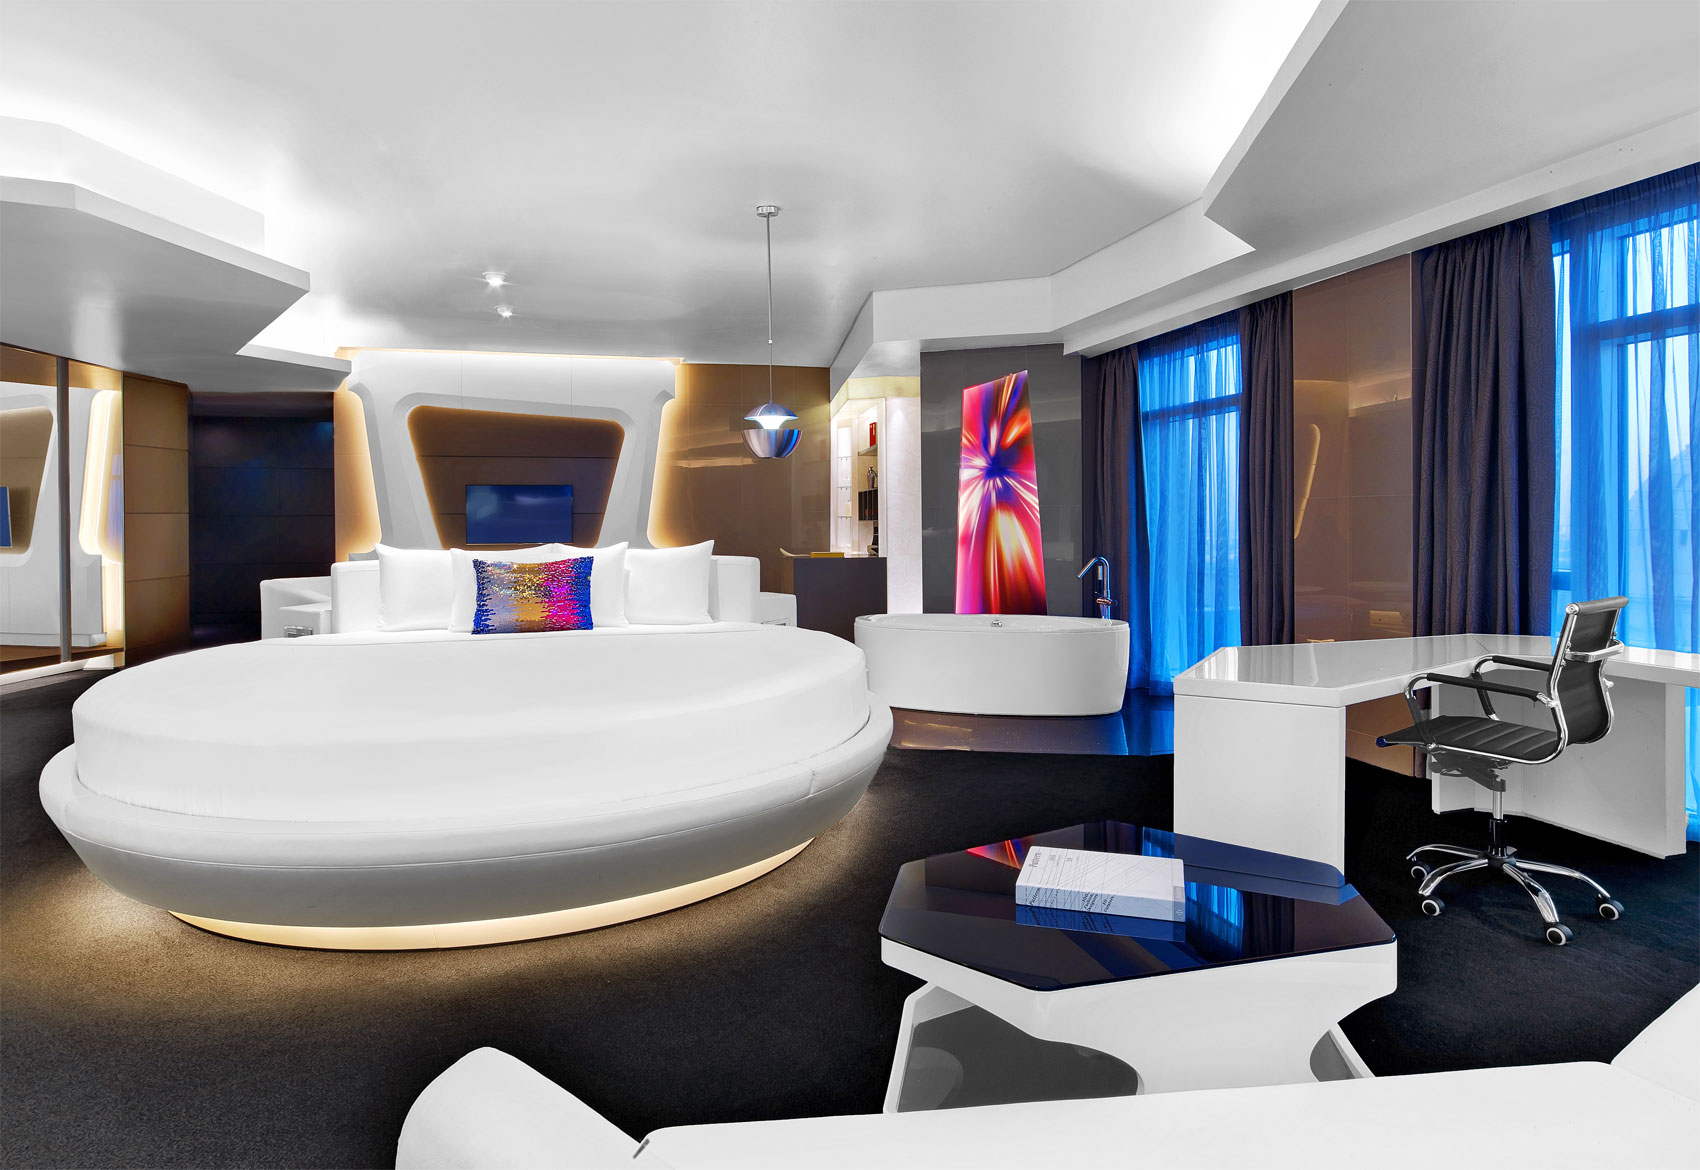 The Bold & Futuristic Hotel W Dubai Comes To Al Habtoor City